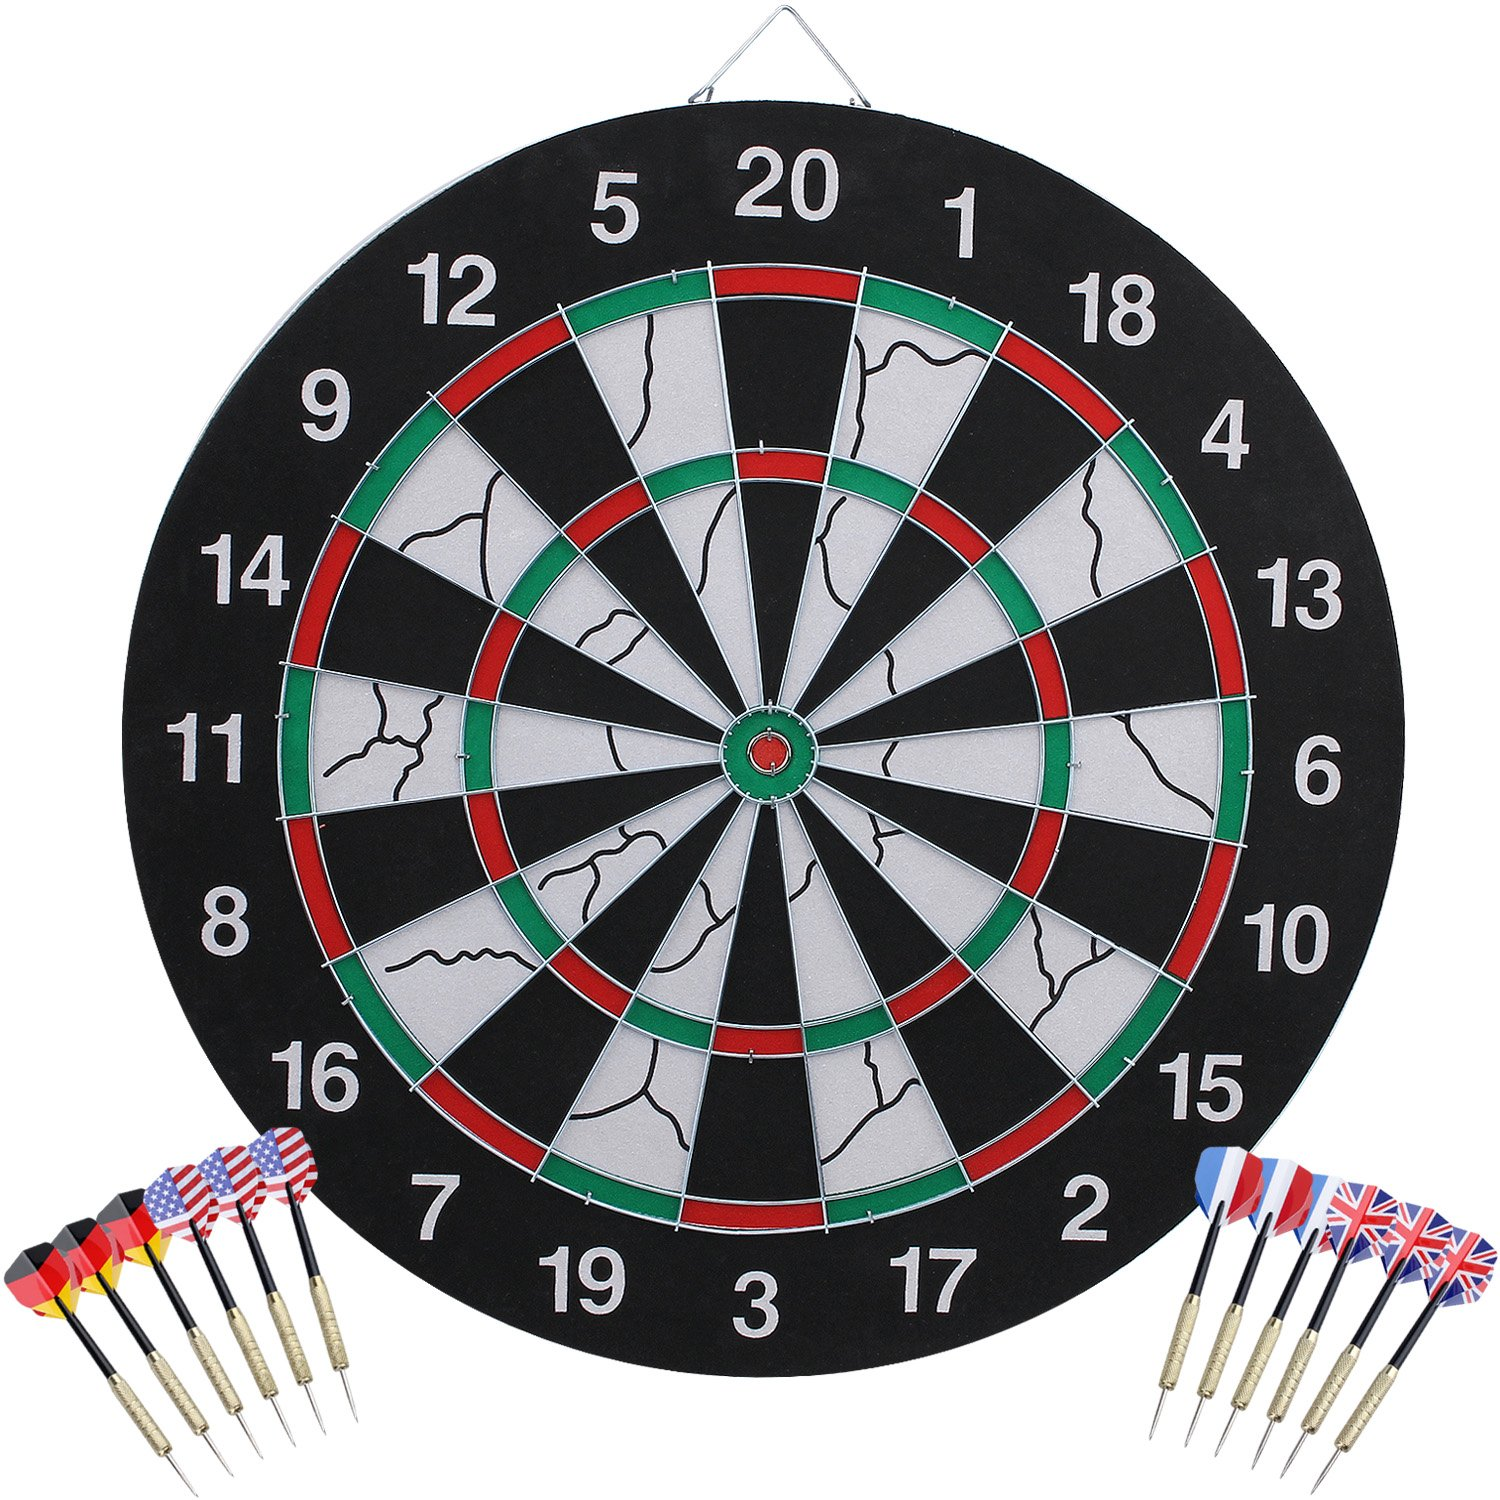 Kingstar Double-Sided Steel Tip Dart Board Set, Professional Home Dartboard Kit Game Flocking Dart Board Bristle Dartboards with 12 Brass Darts (Multicolor) by Kingstar